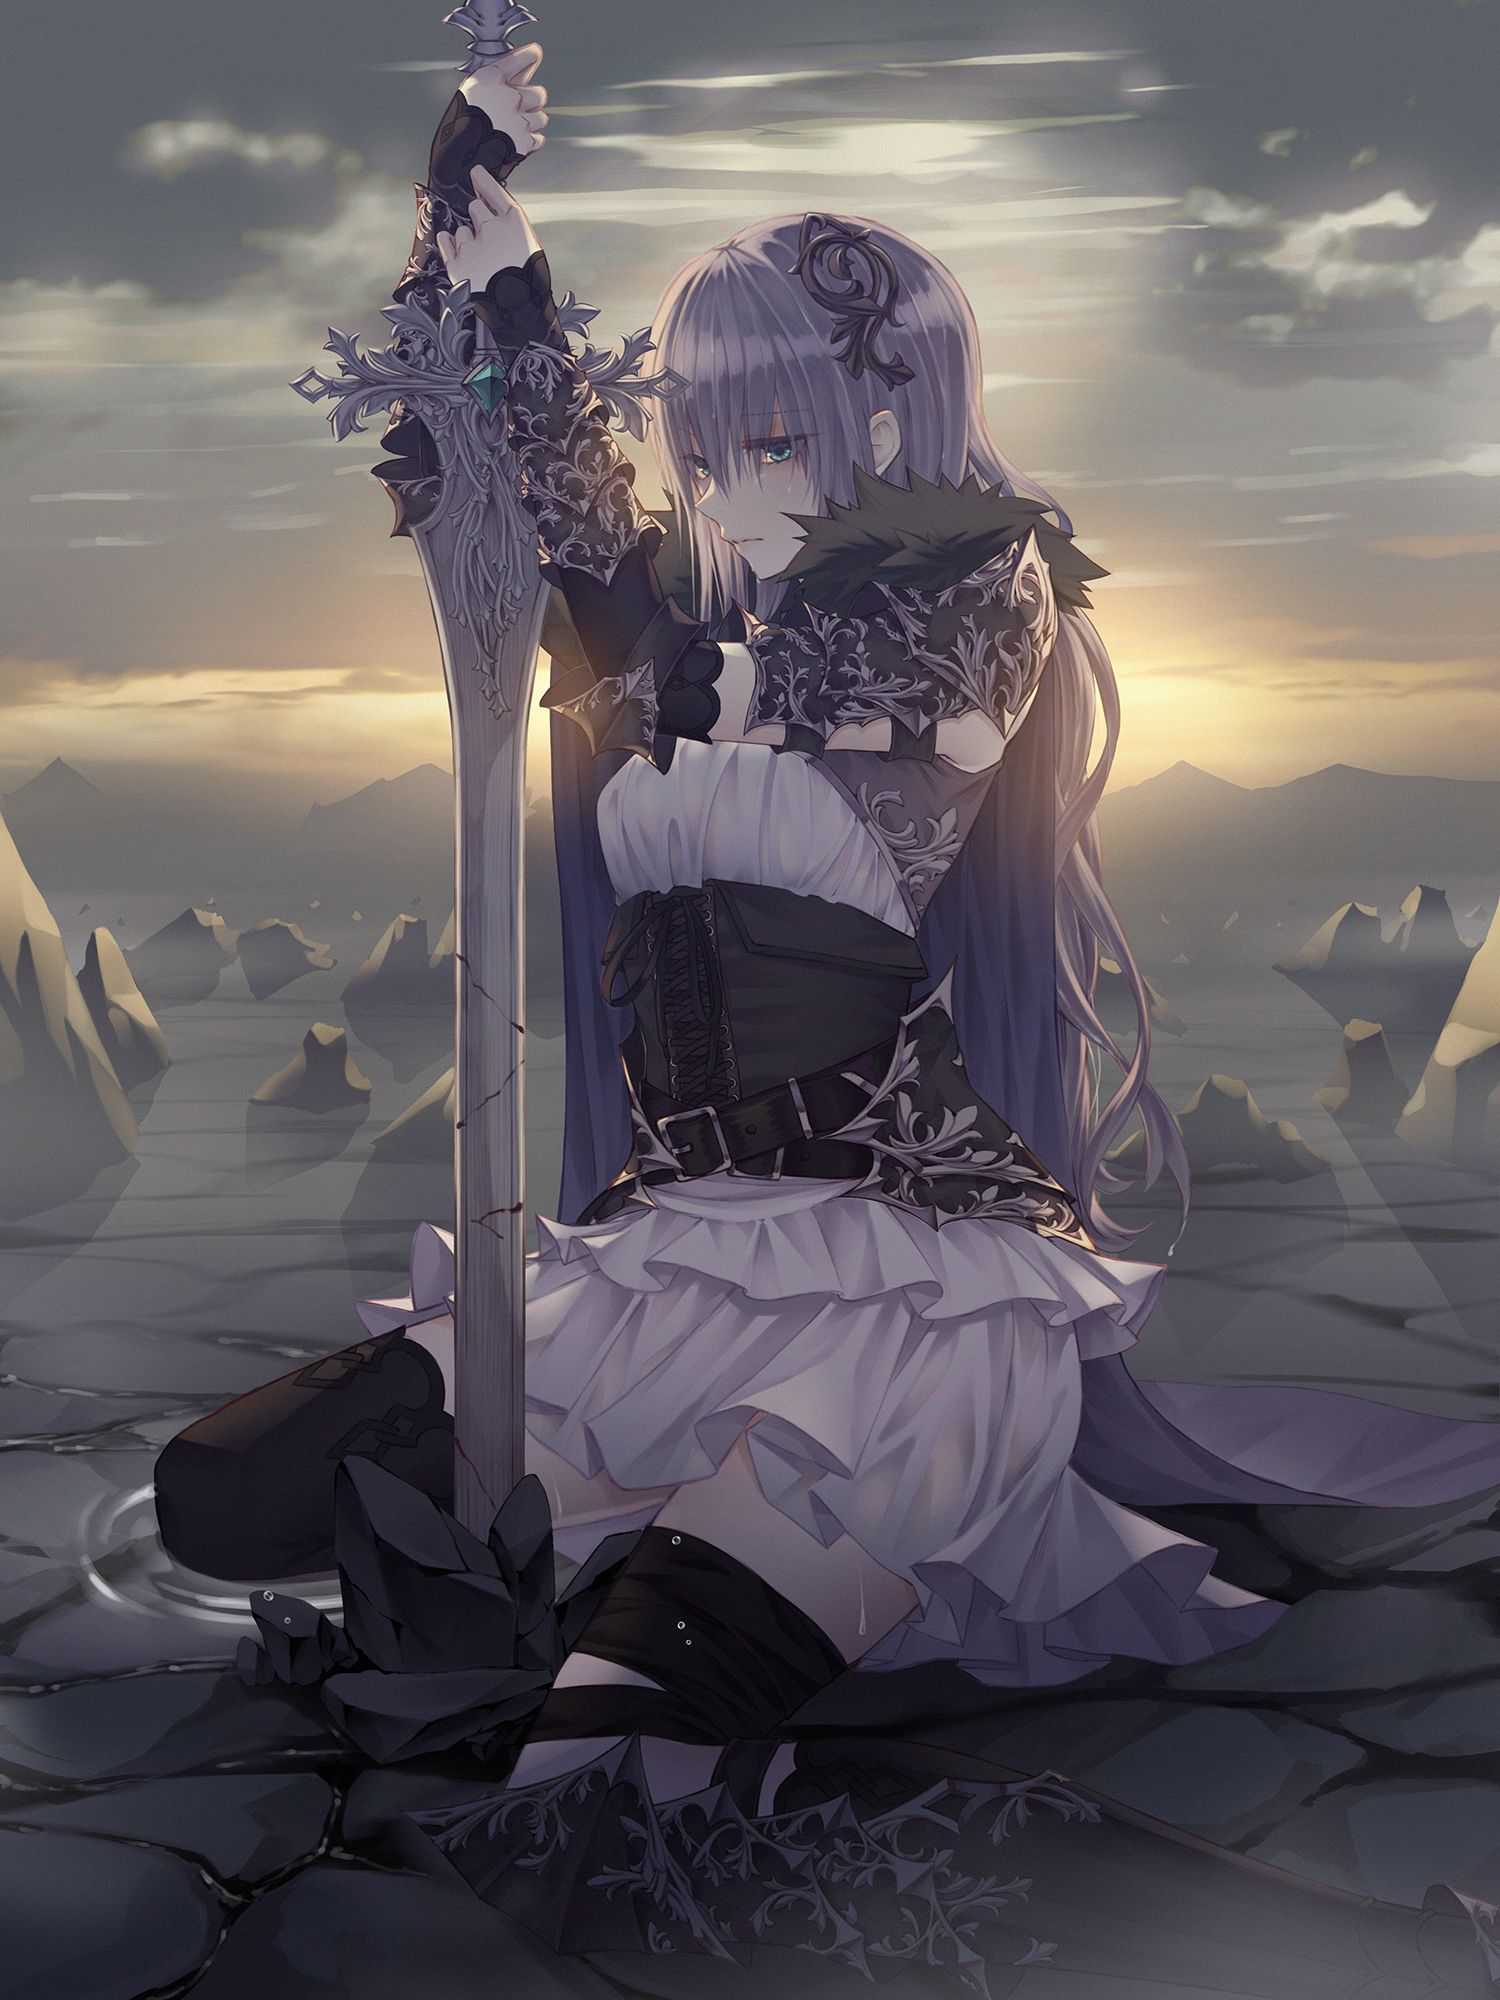 Anime Girl With Sword And Silver Hair 5933 Loadtve